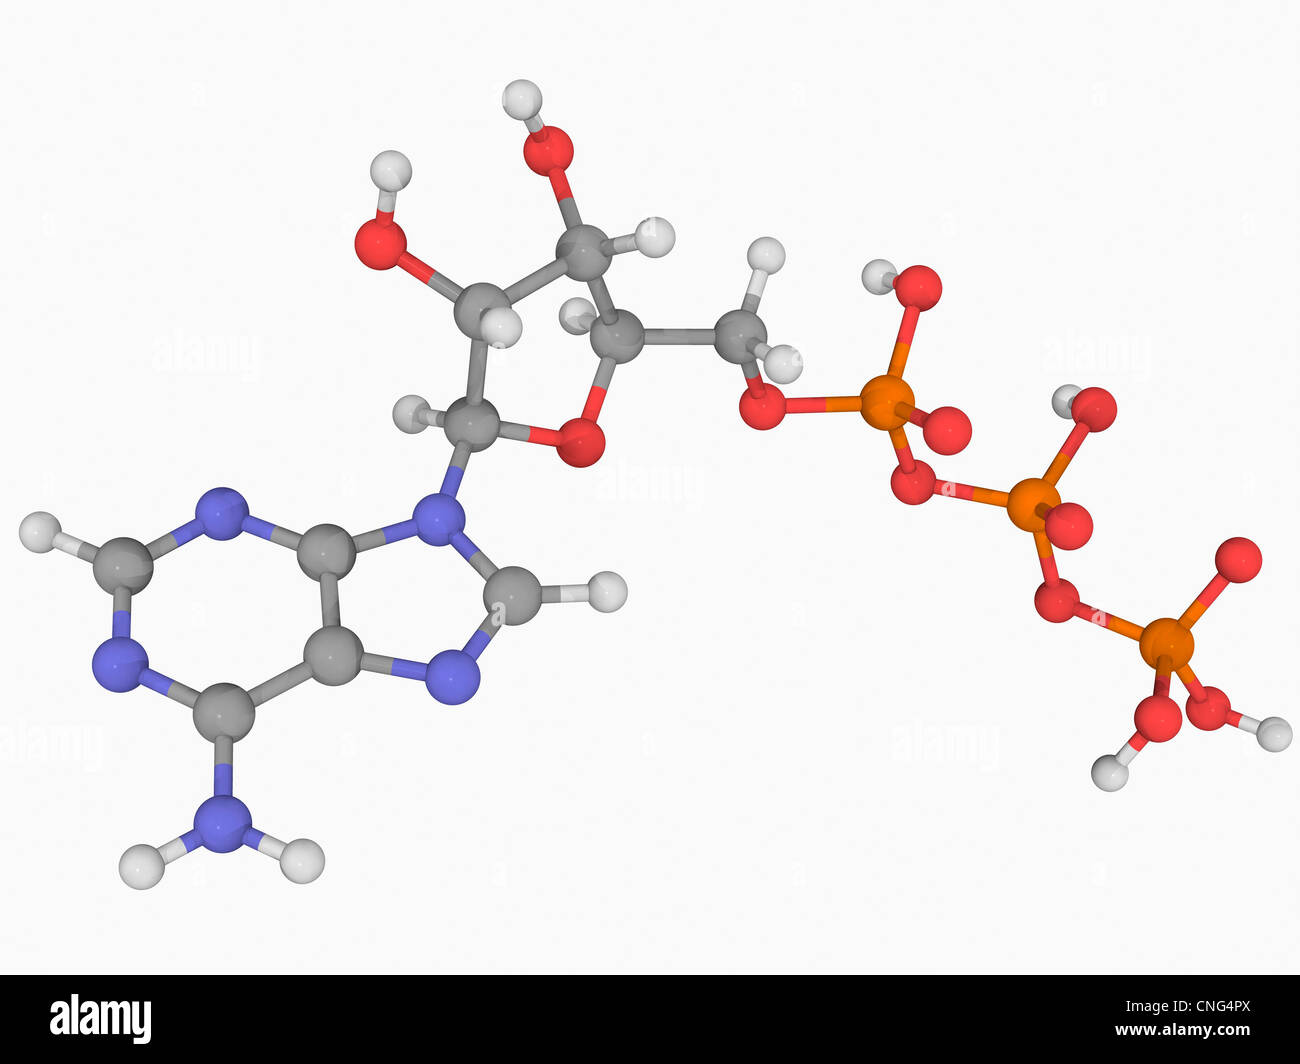 Adenosine triphosphate molecule Stock Photo